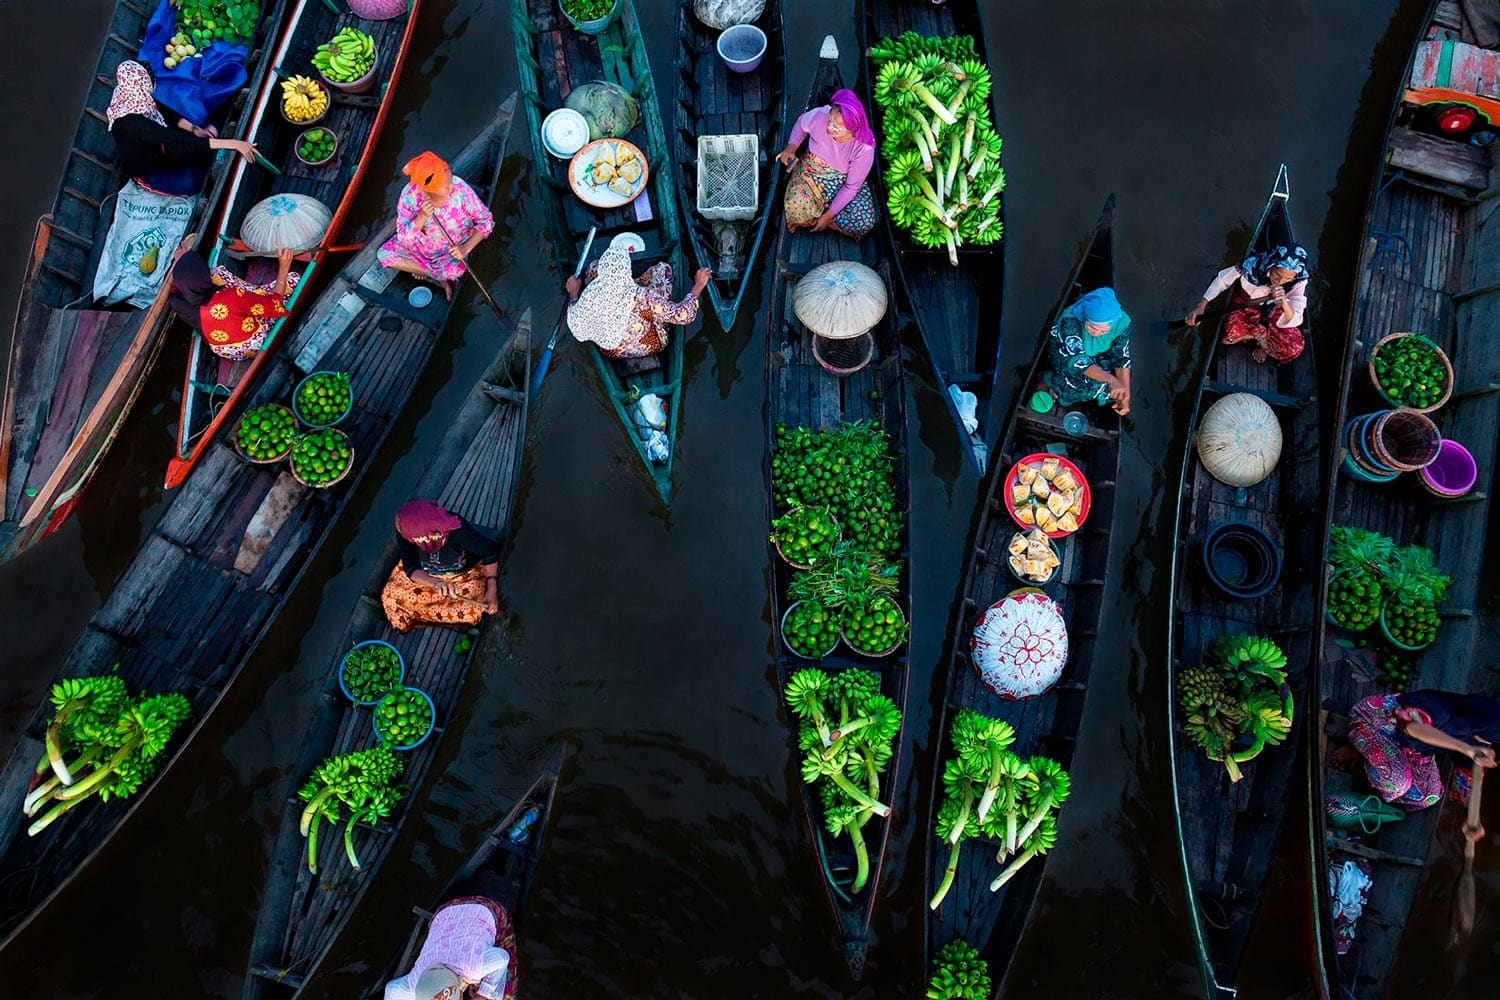 original_02-Floating-Market-by-Sina-Falker.jpg